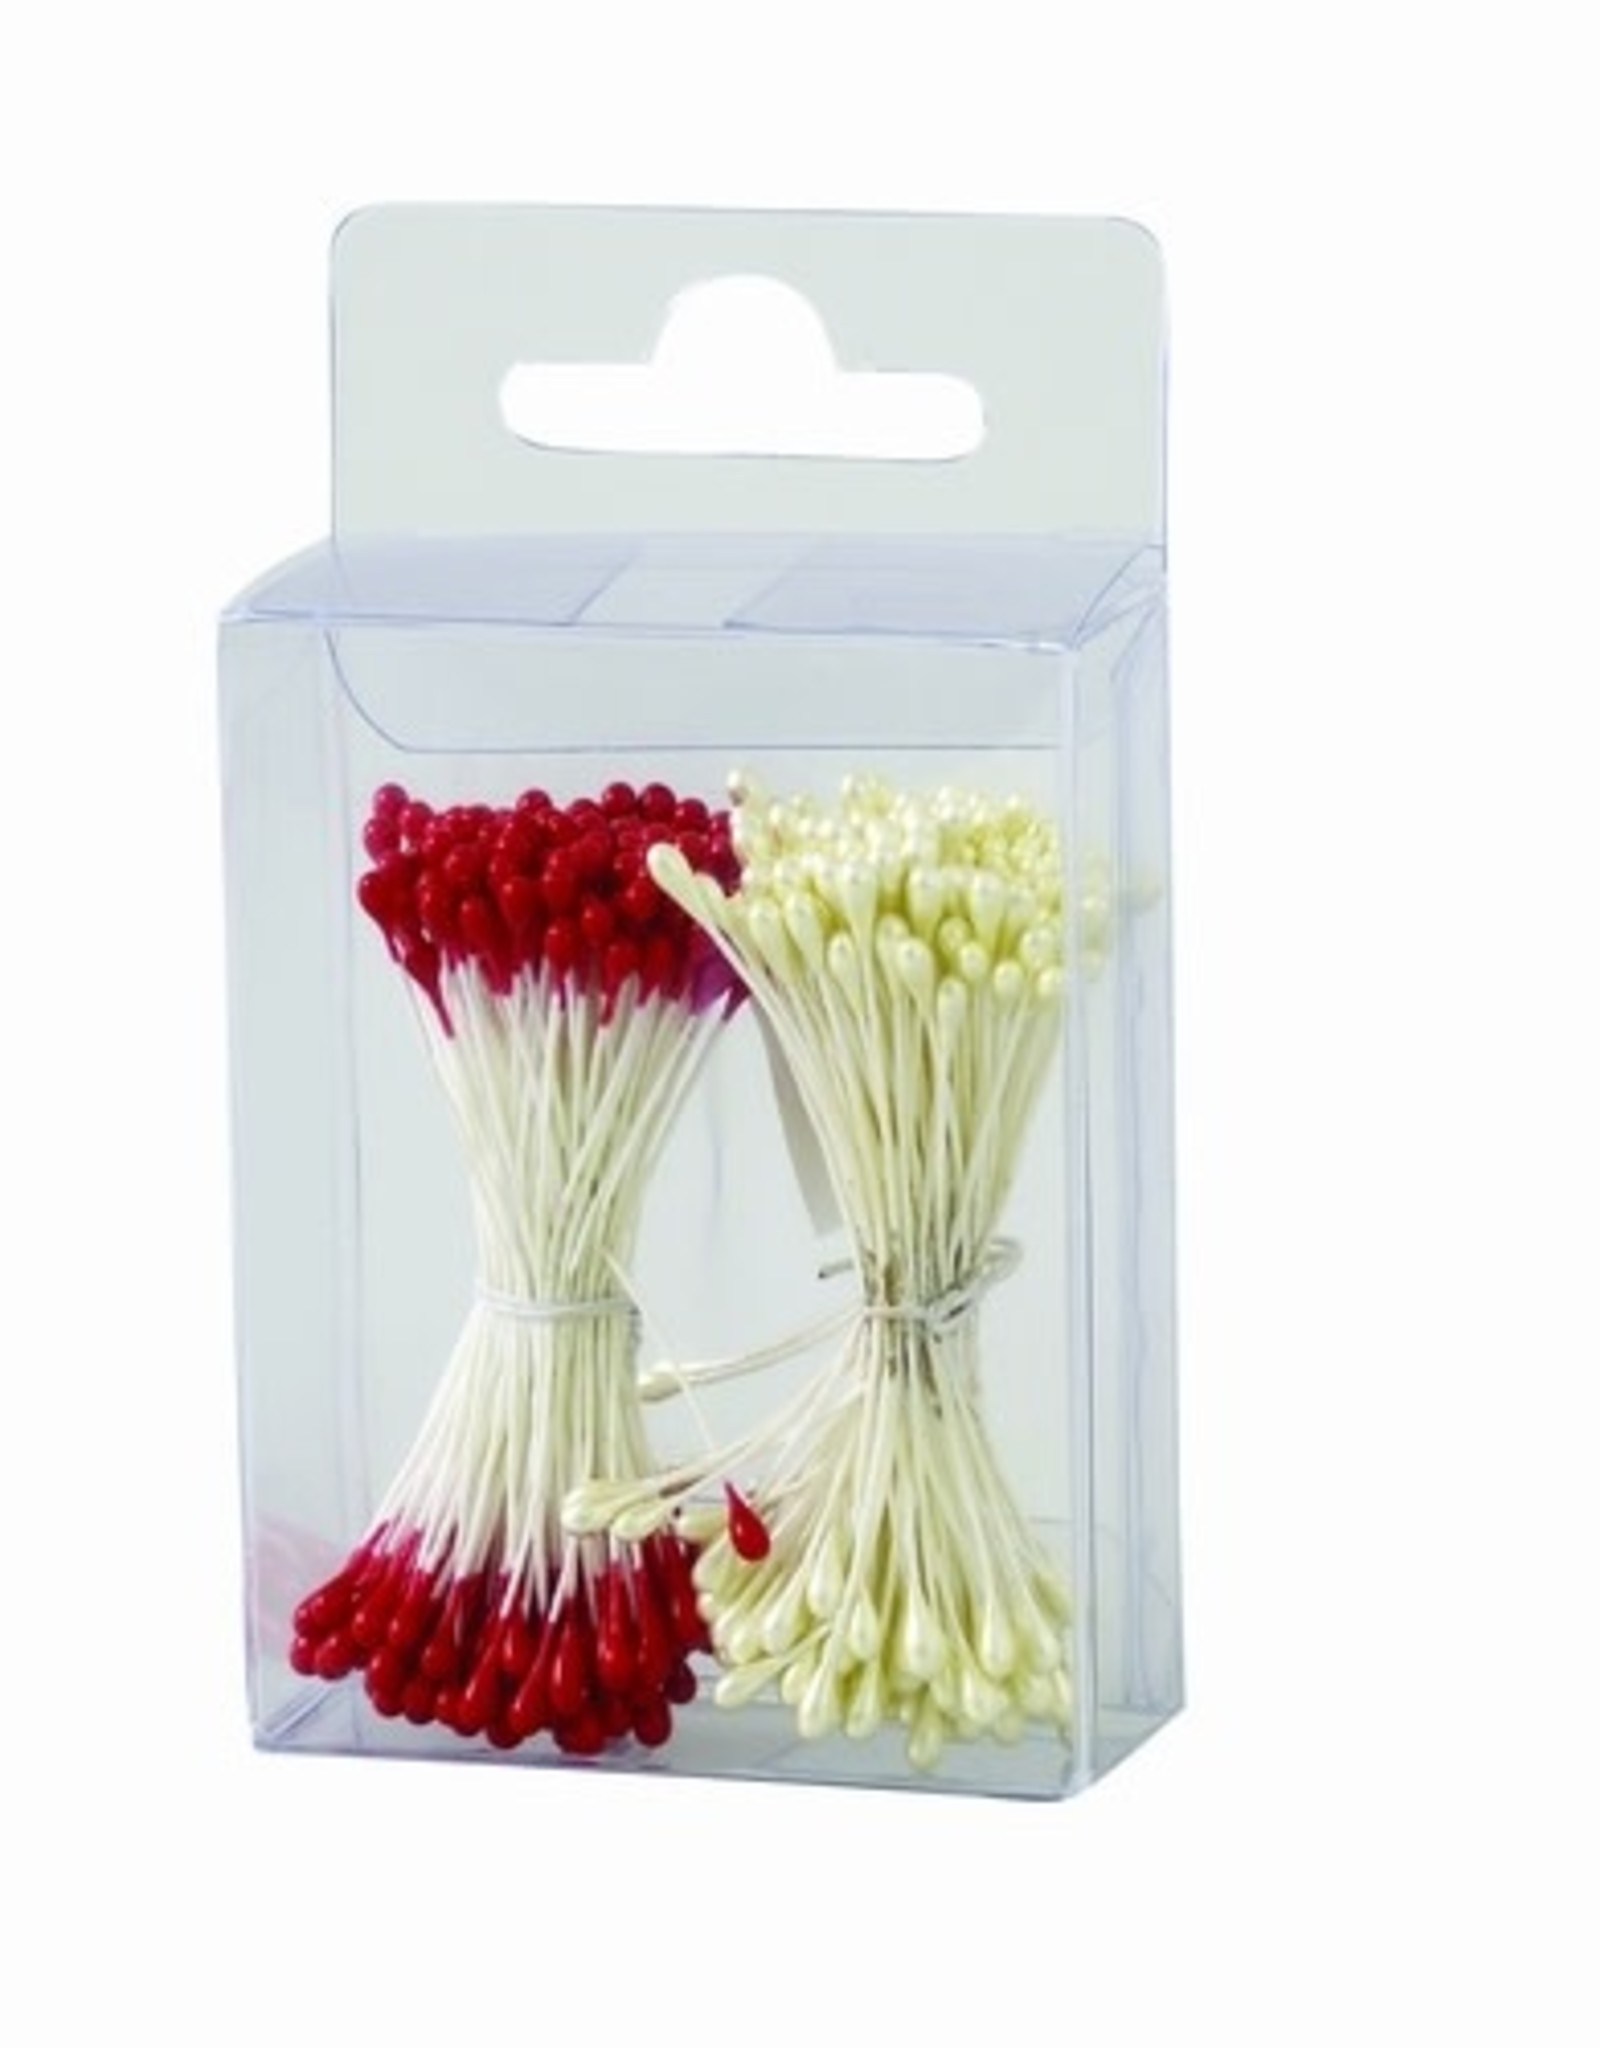 Decora Decora Pistils For Flowers Pearl White/Red, 288st.